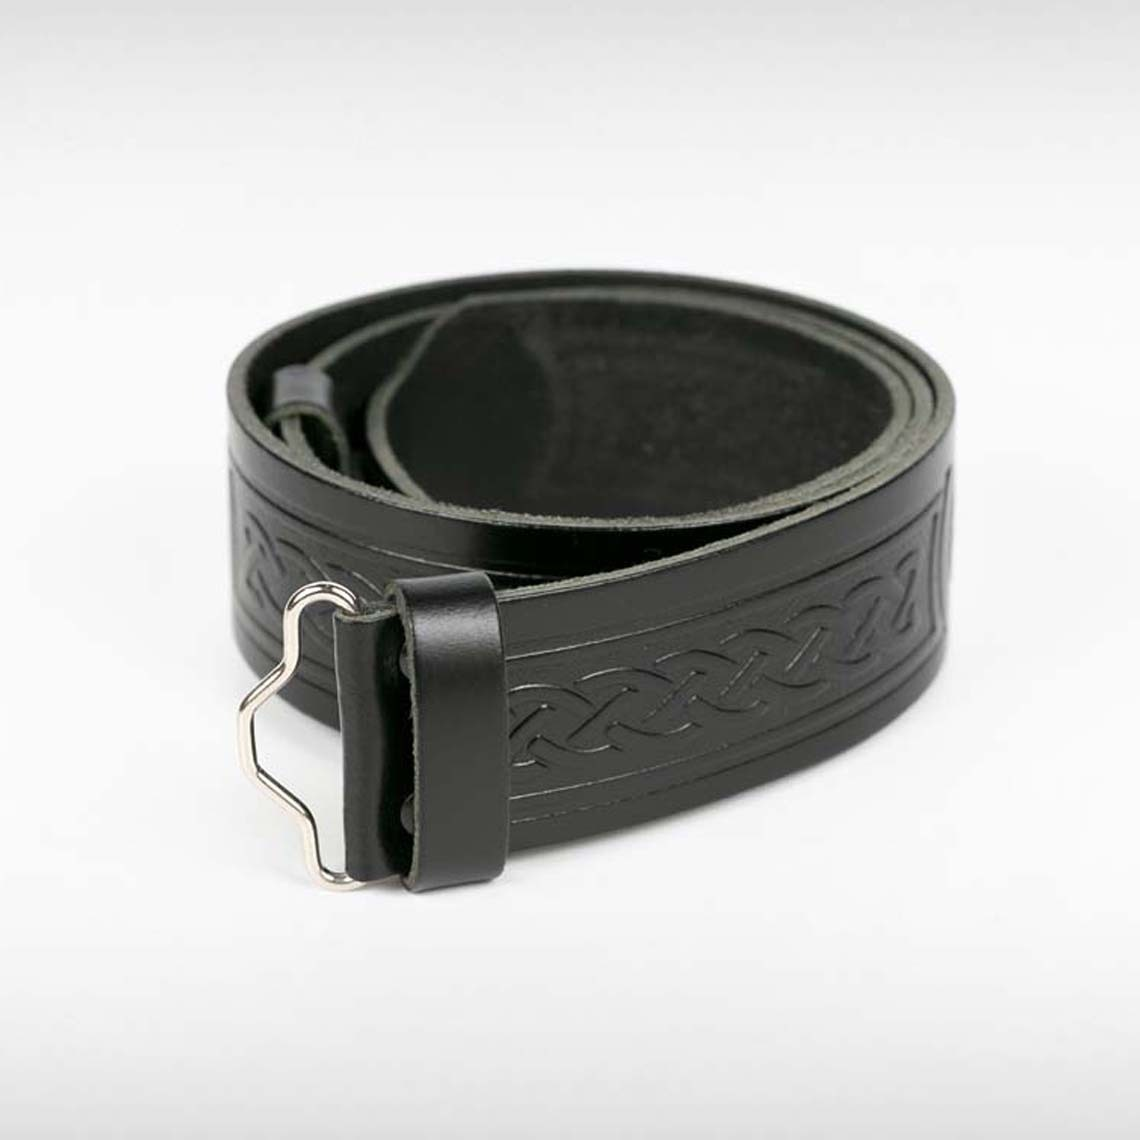 Celtic Knot Glen Esk Trews Belt